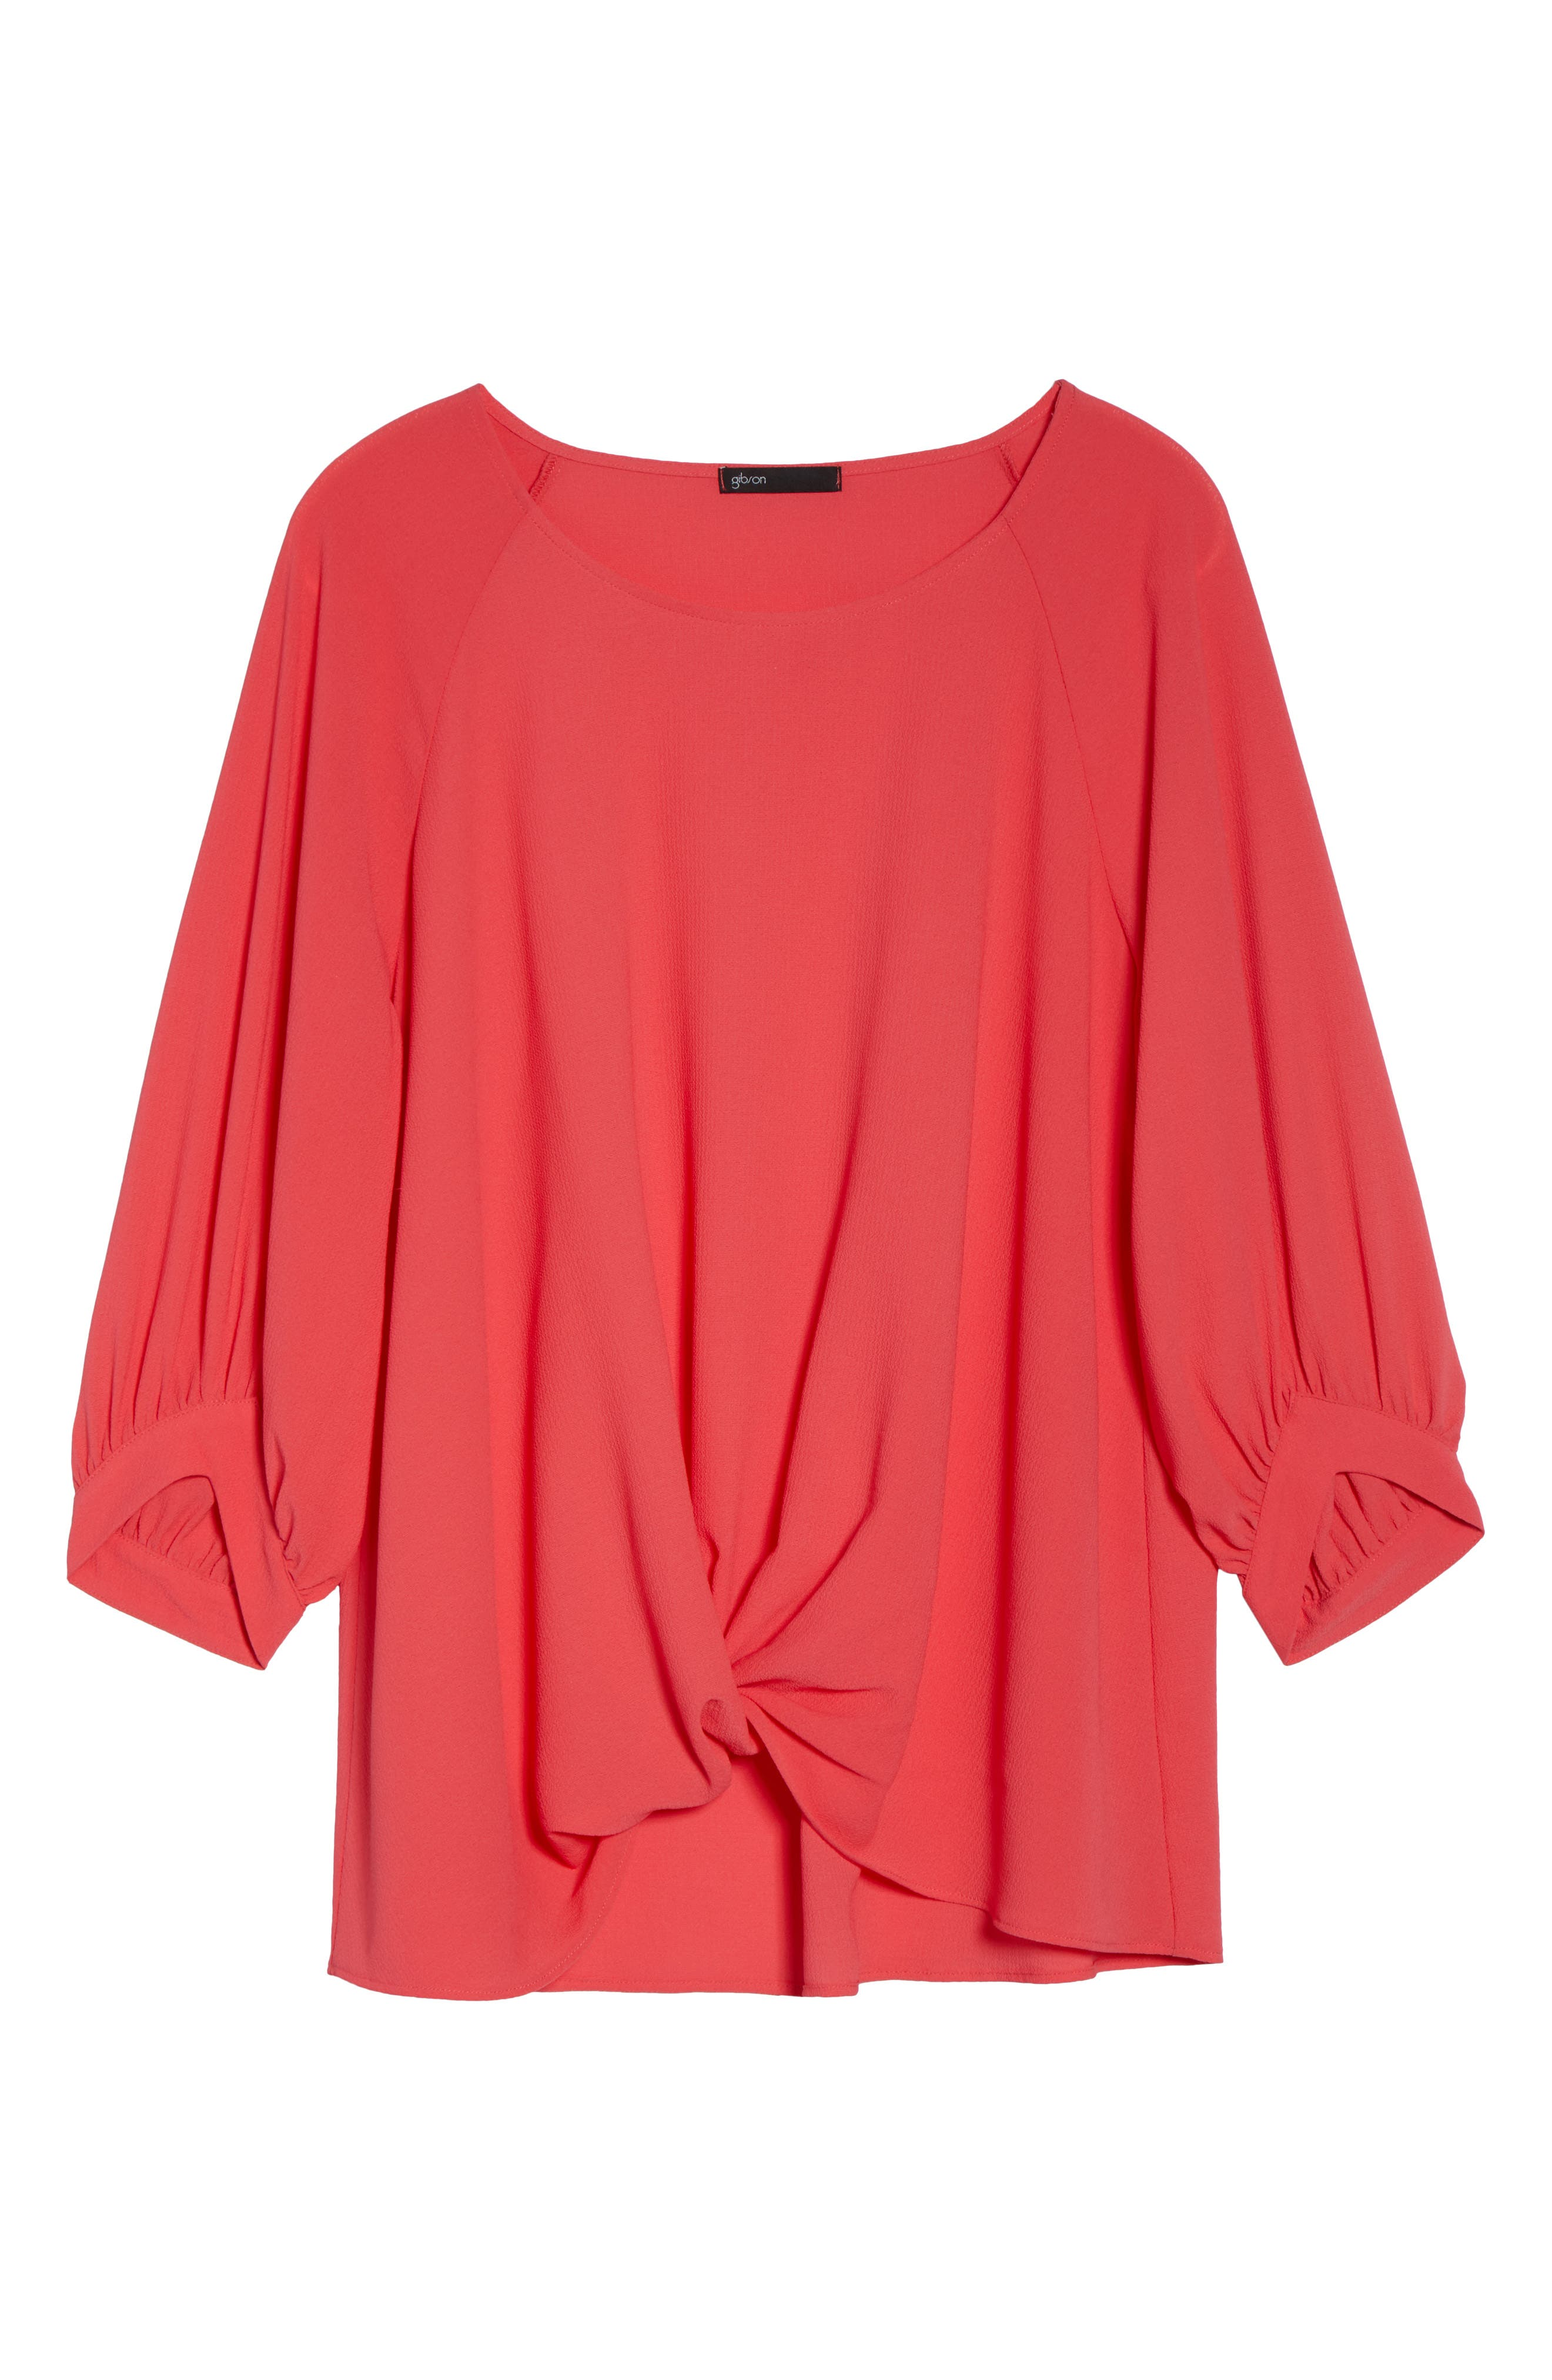 x Living in Yellow Maggie Twist Hem Top,                             Alternate thumbnail 8, color,                             Poppy